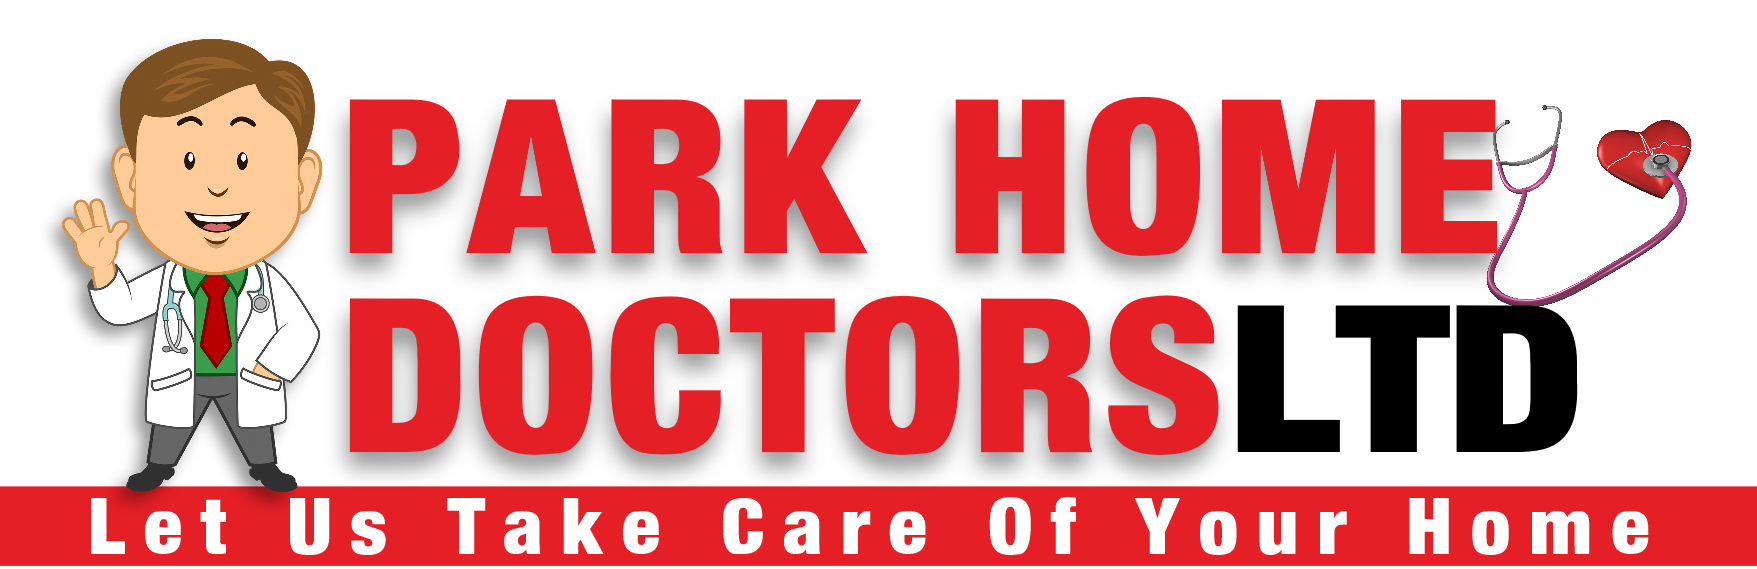 Park Home Doctors Ltd.